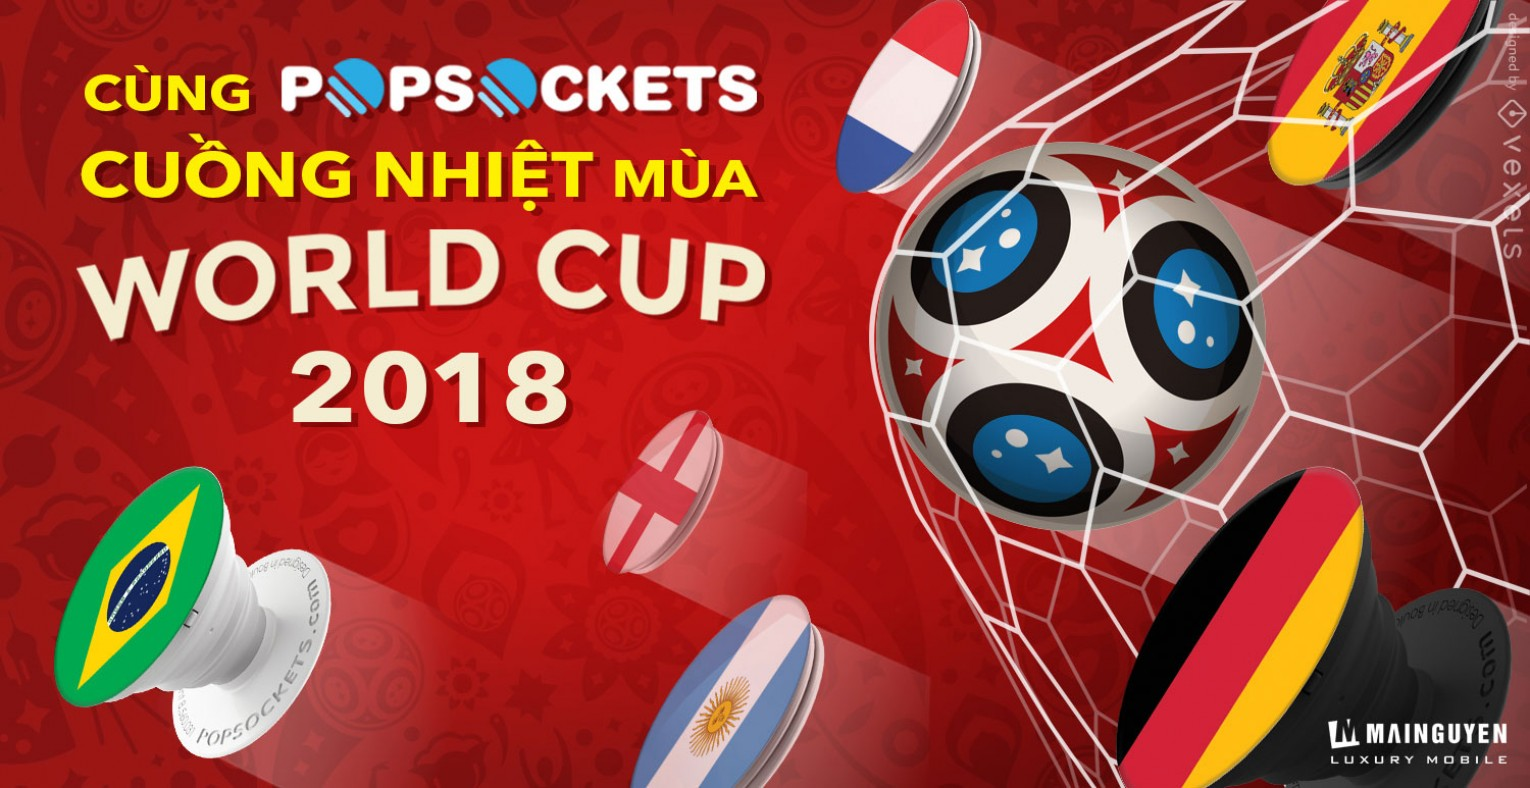 PopSocket World Cup